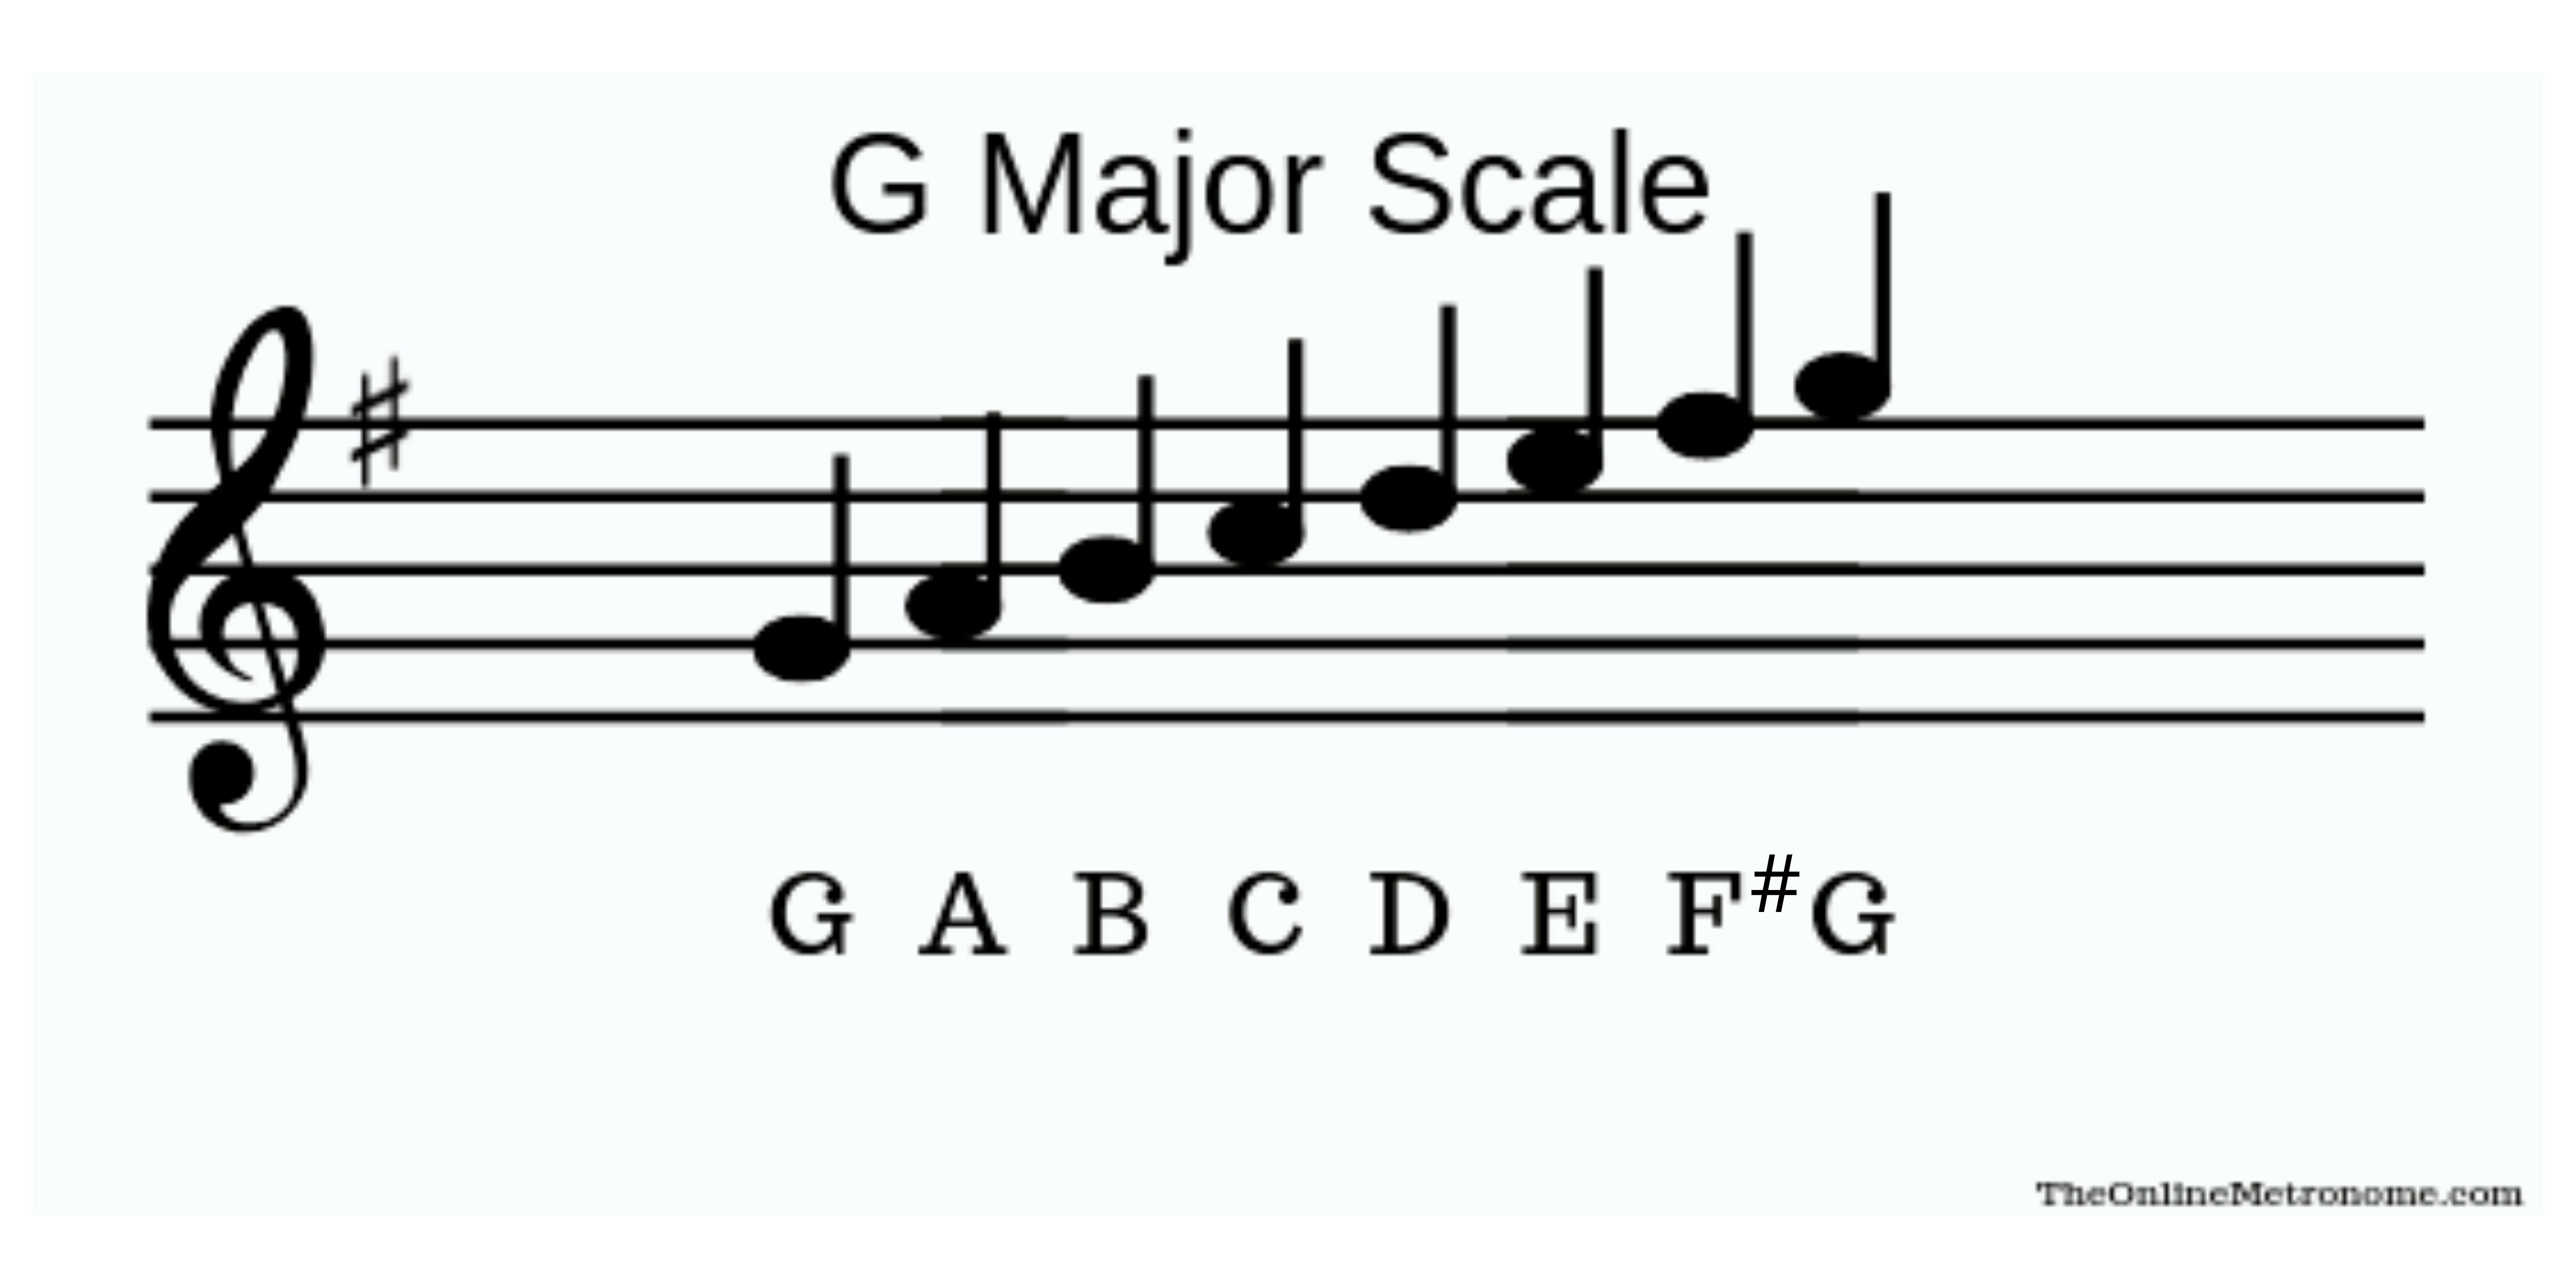 G-major-scale.png